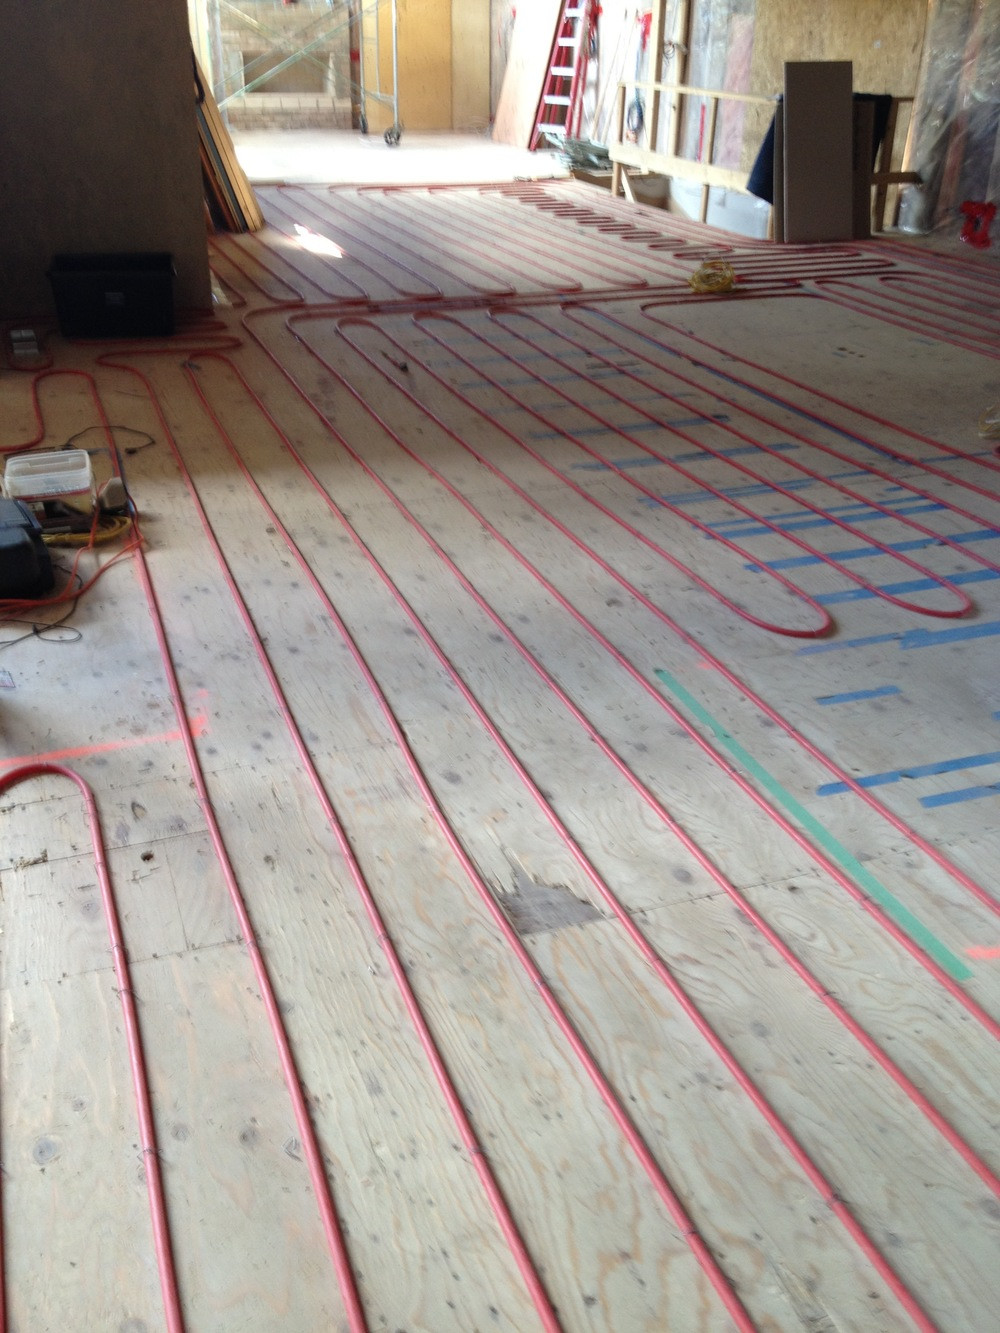 Best ideas about Radiant Floor Heating DIY . Save or Pin Heated Floors Installing Hydronic Radiant Floor Heating Now.